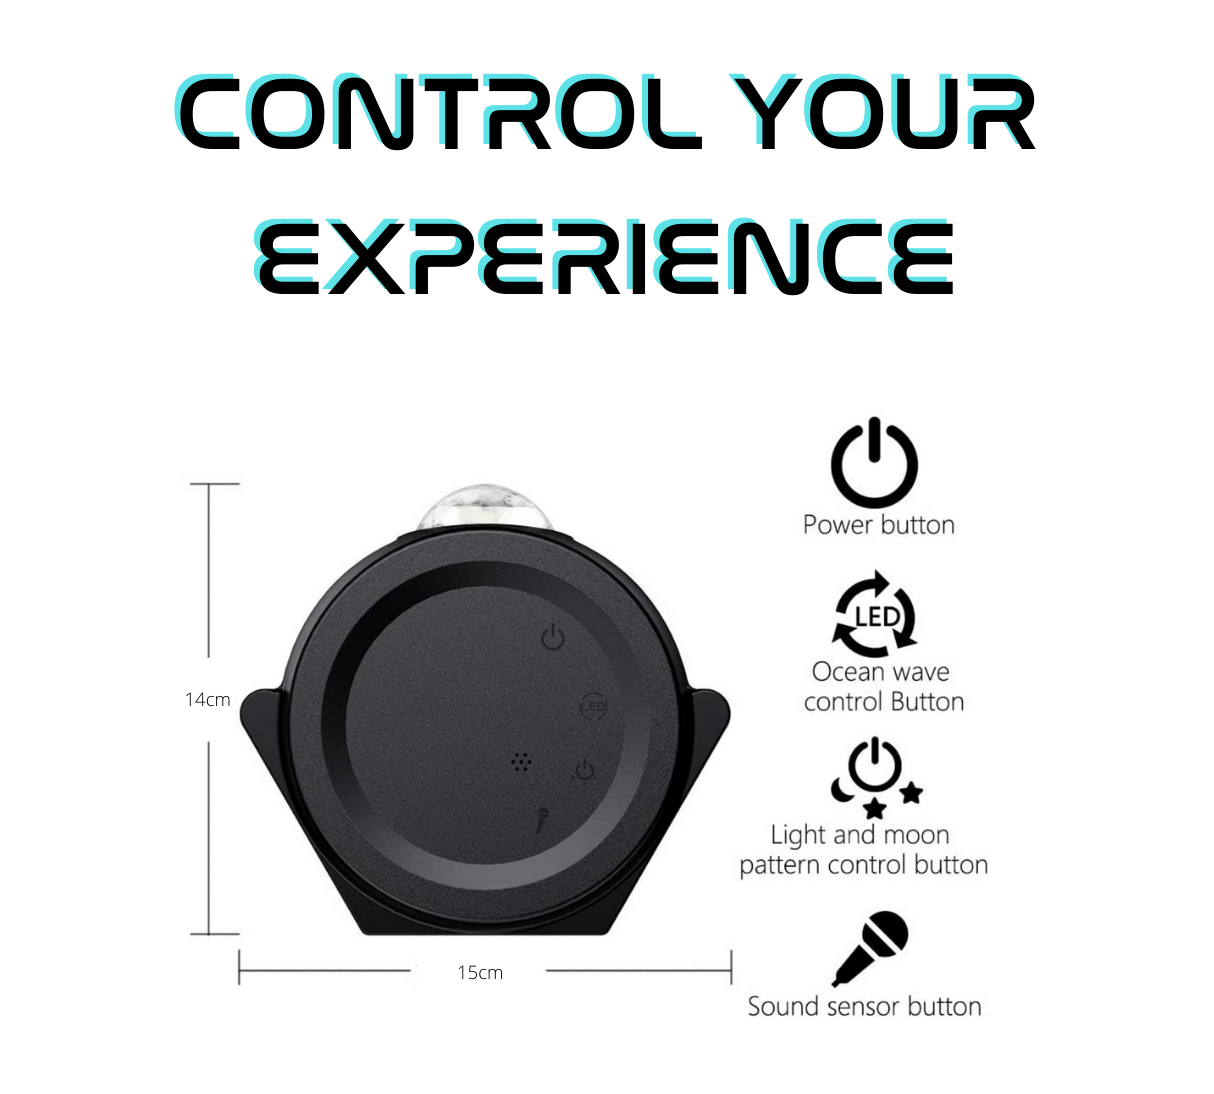 Galaxy projector 4 control buttons